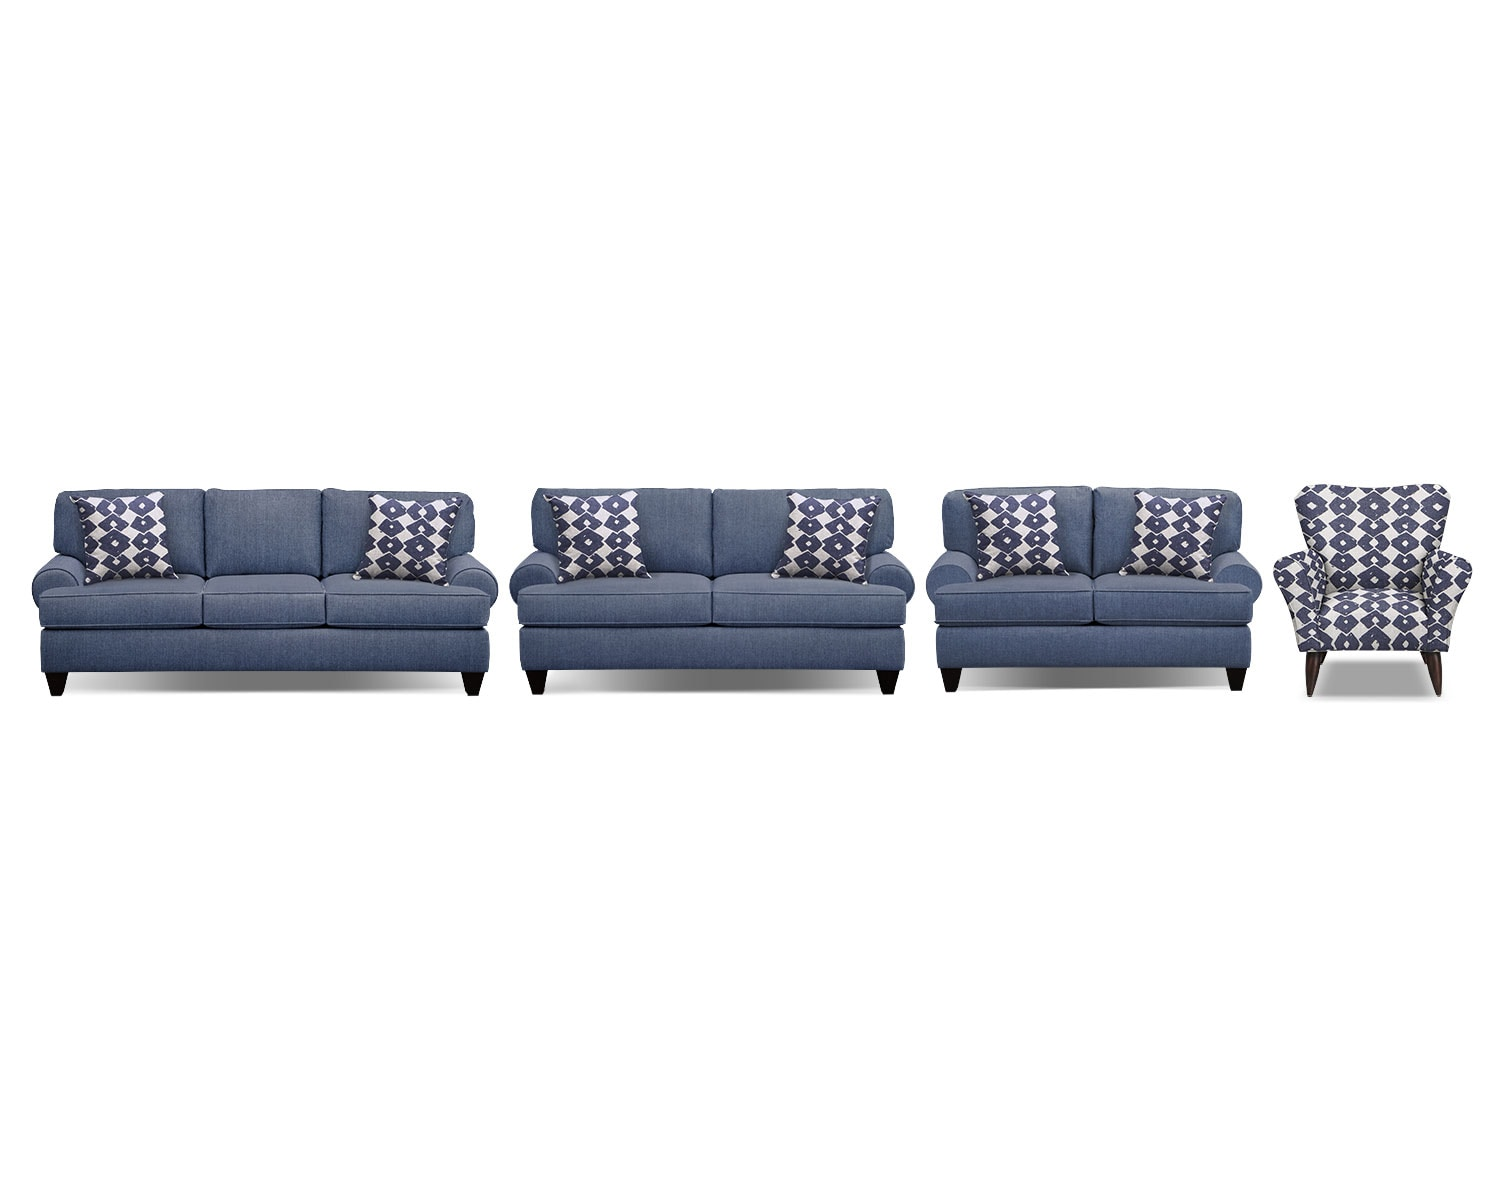 The Bailey Blue Living Room Collection | Value City Furniture and ...